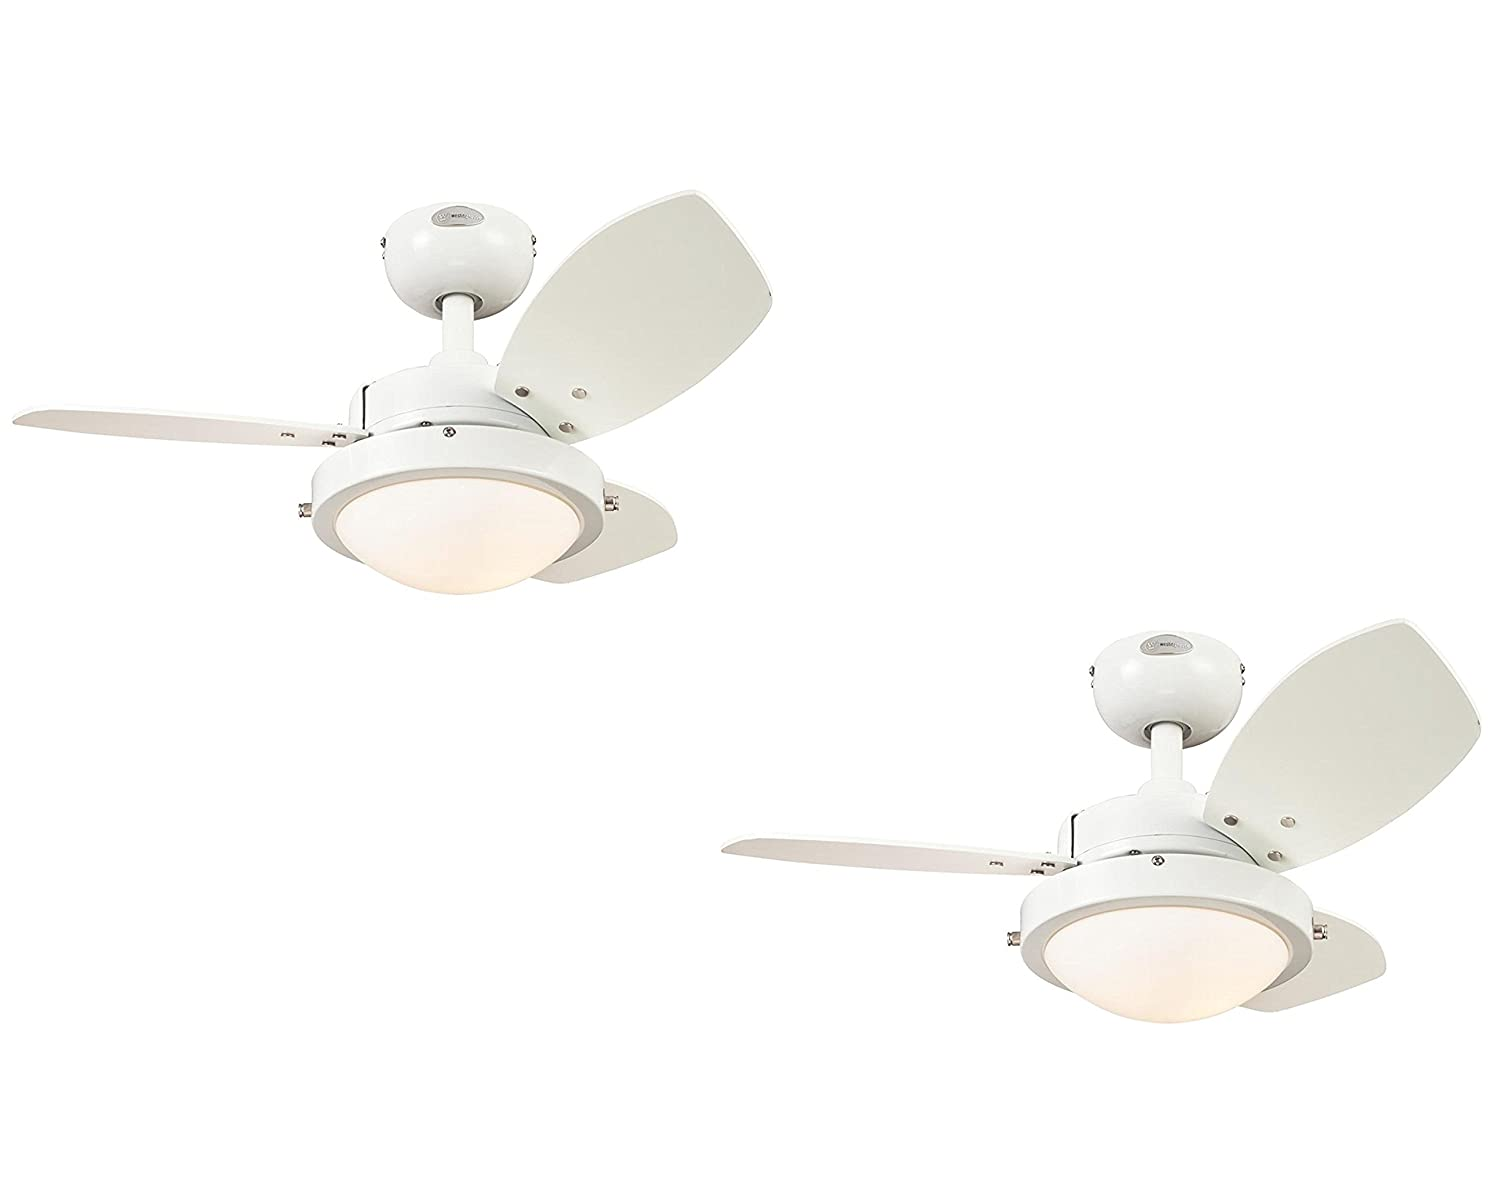 Westinghouse 7247200 Wengue Two-Light Reversible Three-Blade Indoor Ceiling Fan, 30-Inch, White Finish with Opal Frosted Glass - 2 Pack